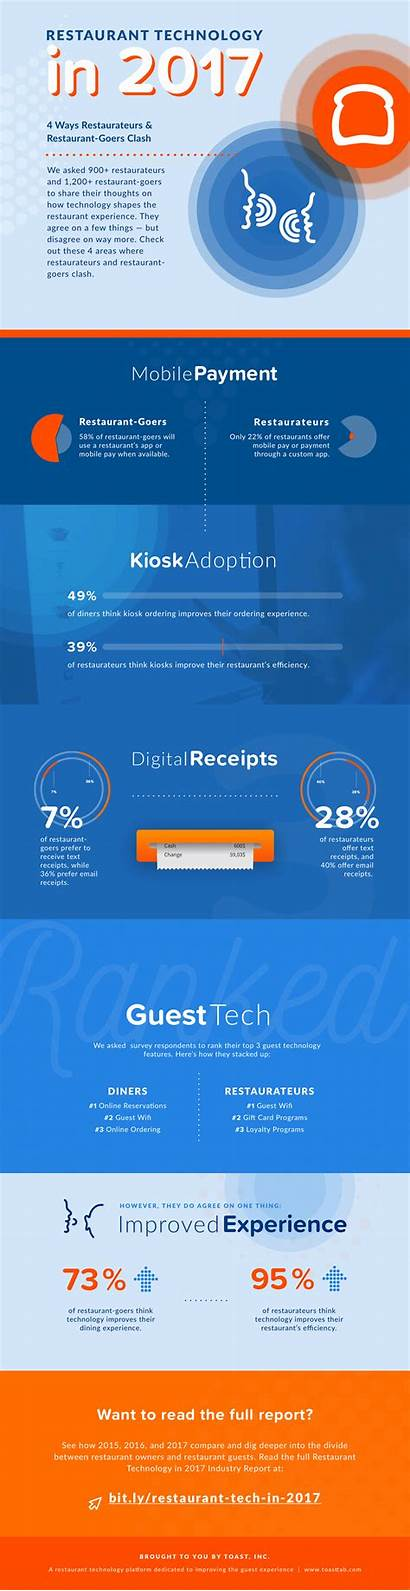 Trends Technology Restaurant Industry Infographic Predictions